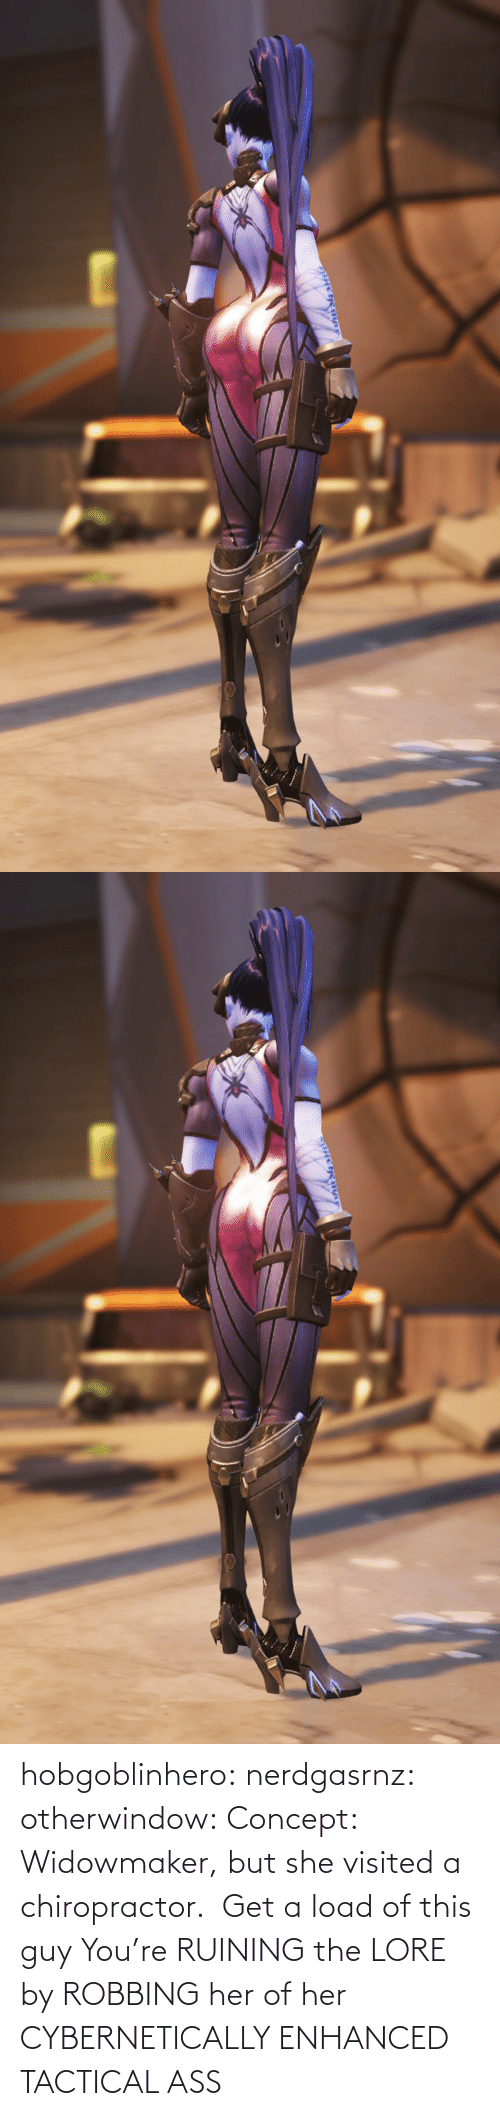 Inline: hobgoblinhero: nerdgasrnz:  otherwindow: Concept: Widowmaker, but she visited a chiropractor.  Get a load of this guy  You're RUINING the LORE by ROBBING her of her CYBERNETICALLY ENHANCED TACTICAL ASS